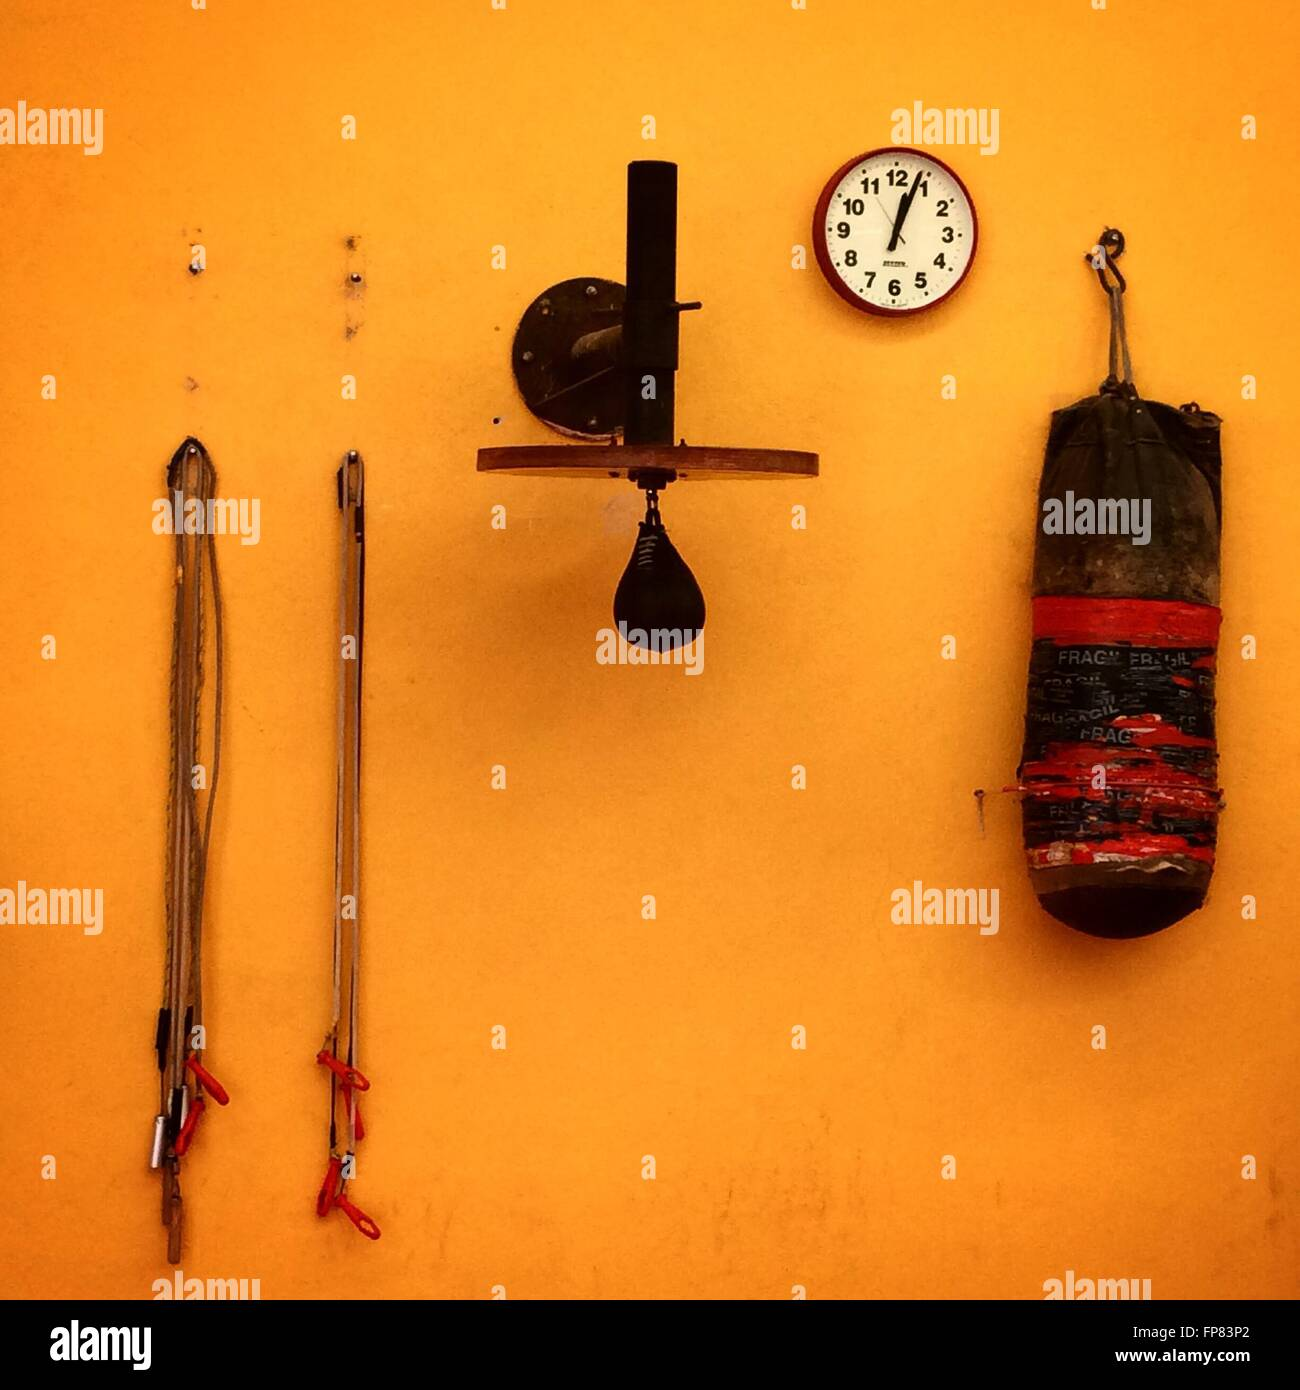 Wall Clock With Boxing Equipment Handing On Orange Wall - Stock Image